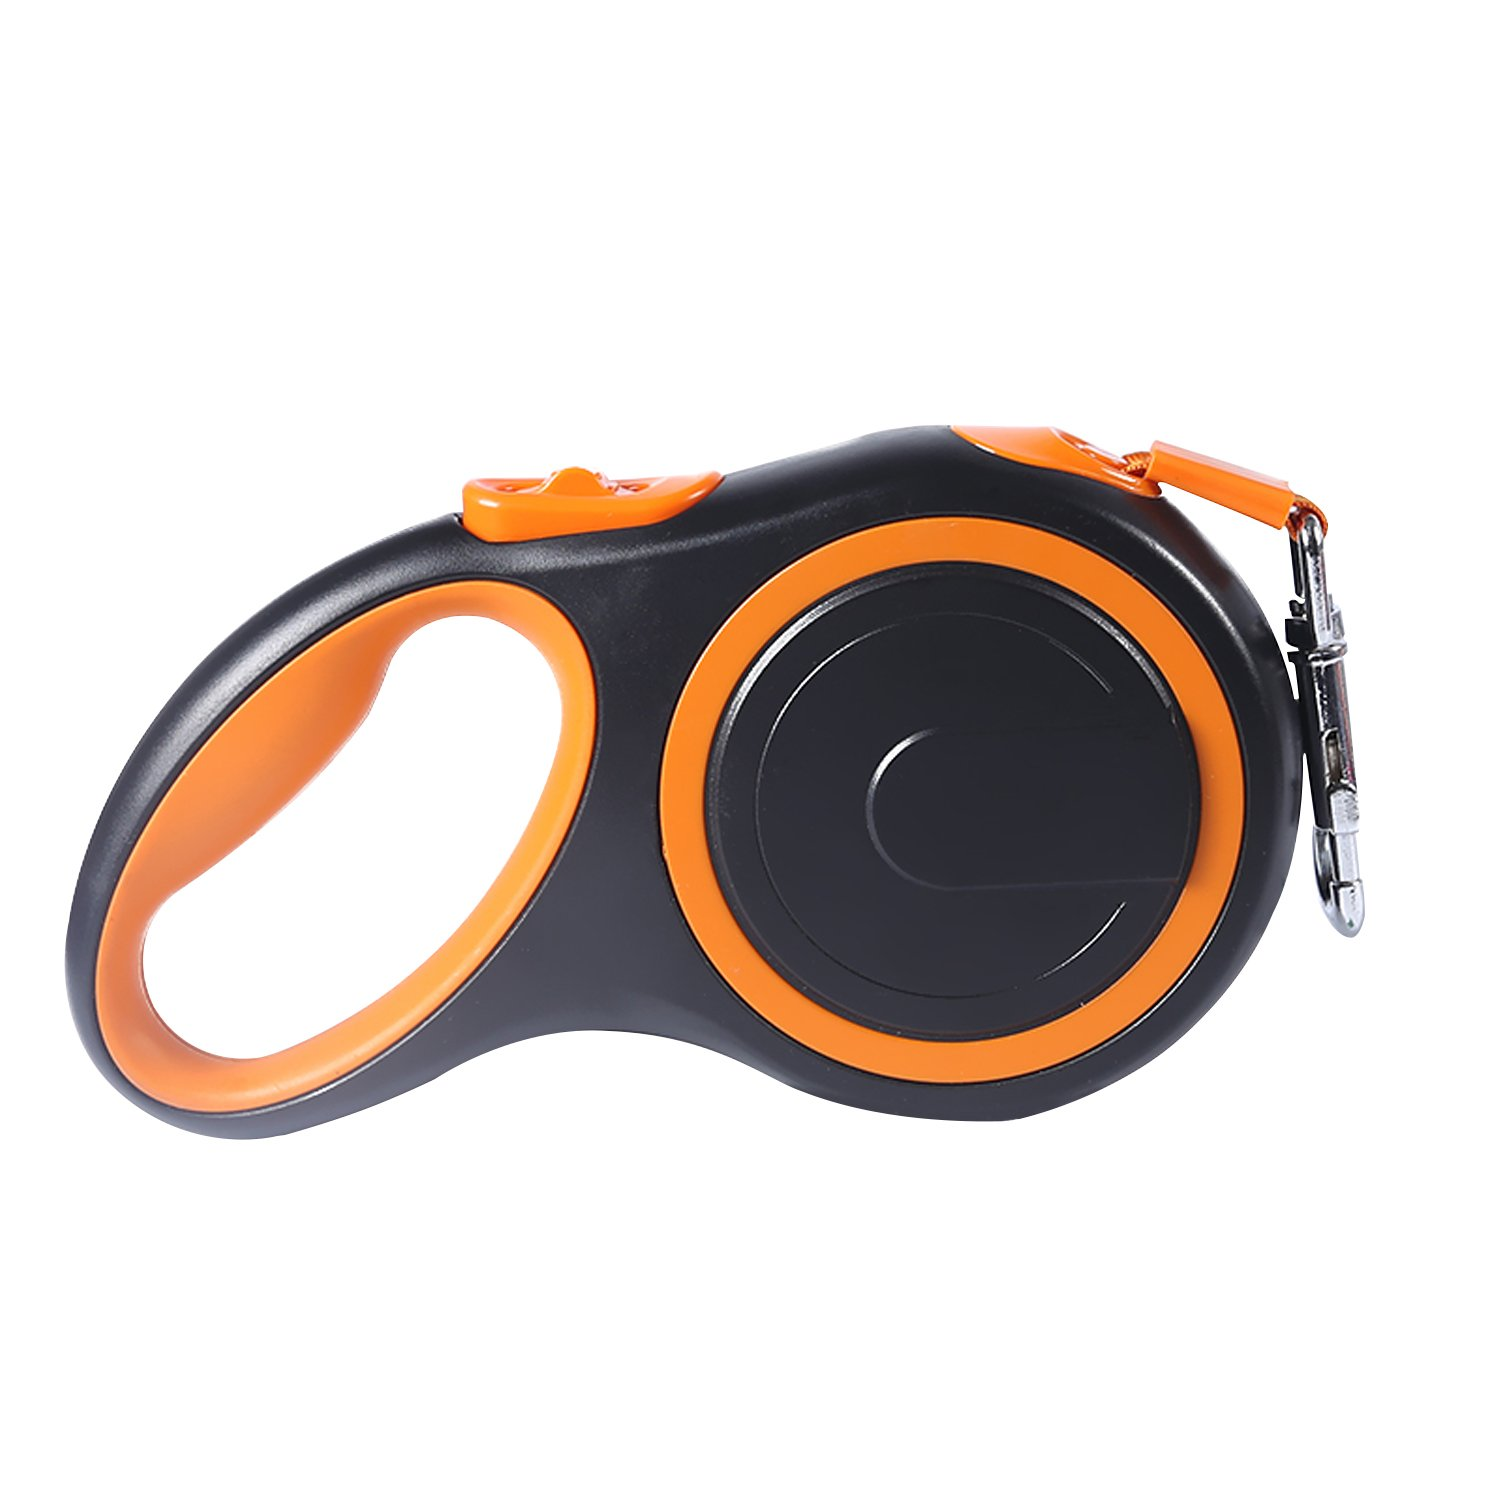 Pet Deluxe Retractable Dog Leash, Pet Walking Leash Retractable 16.5 ft for Small Medium Large Dogs Up to 88lbs, Tangle Free with One Button Break & Lock, Dog Walking Running & Training … (orange)